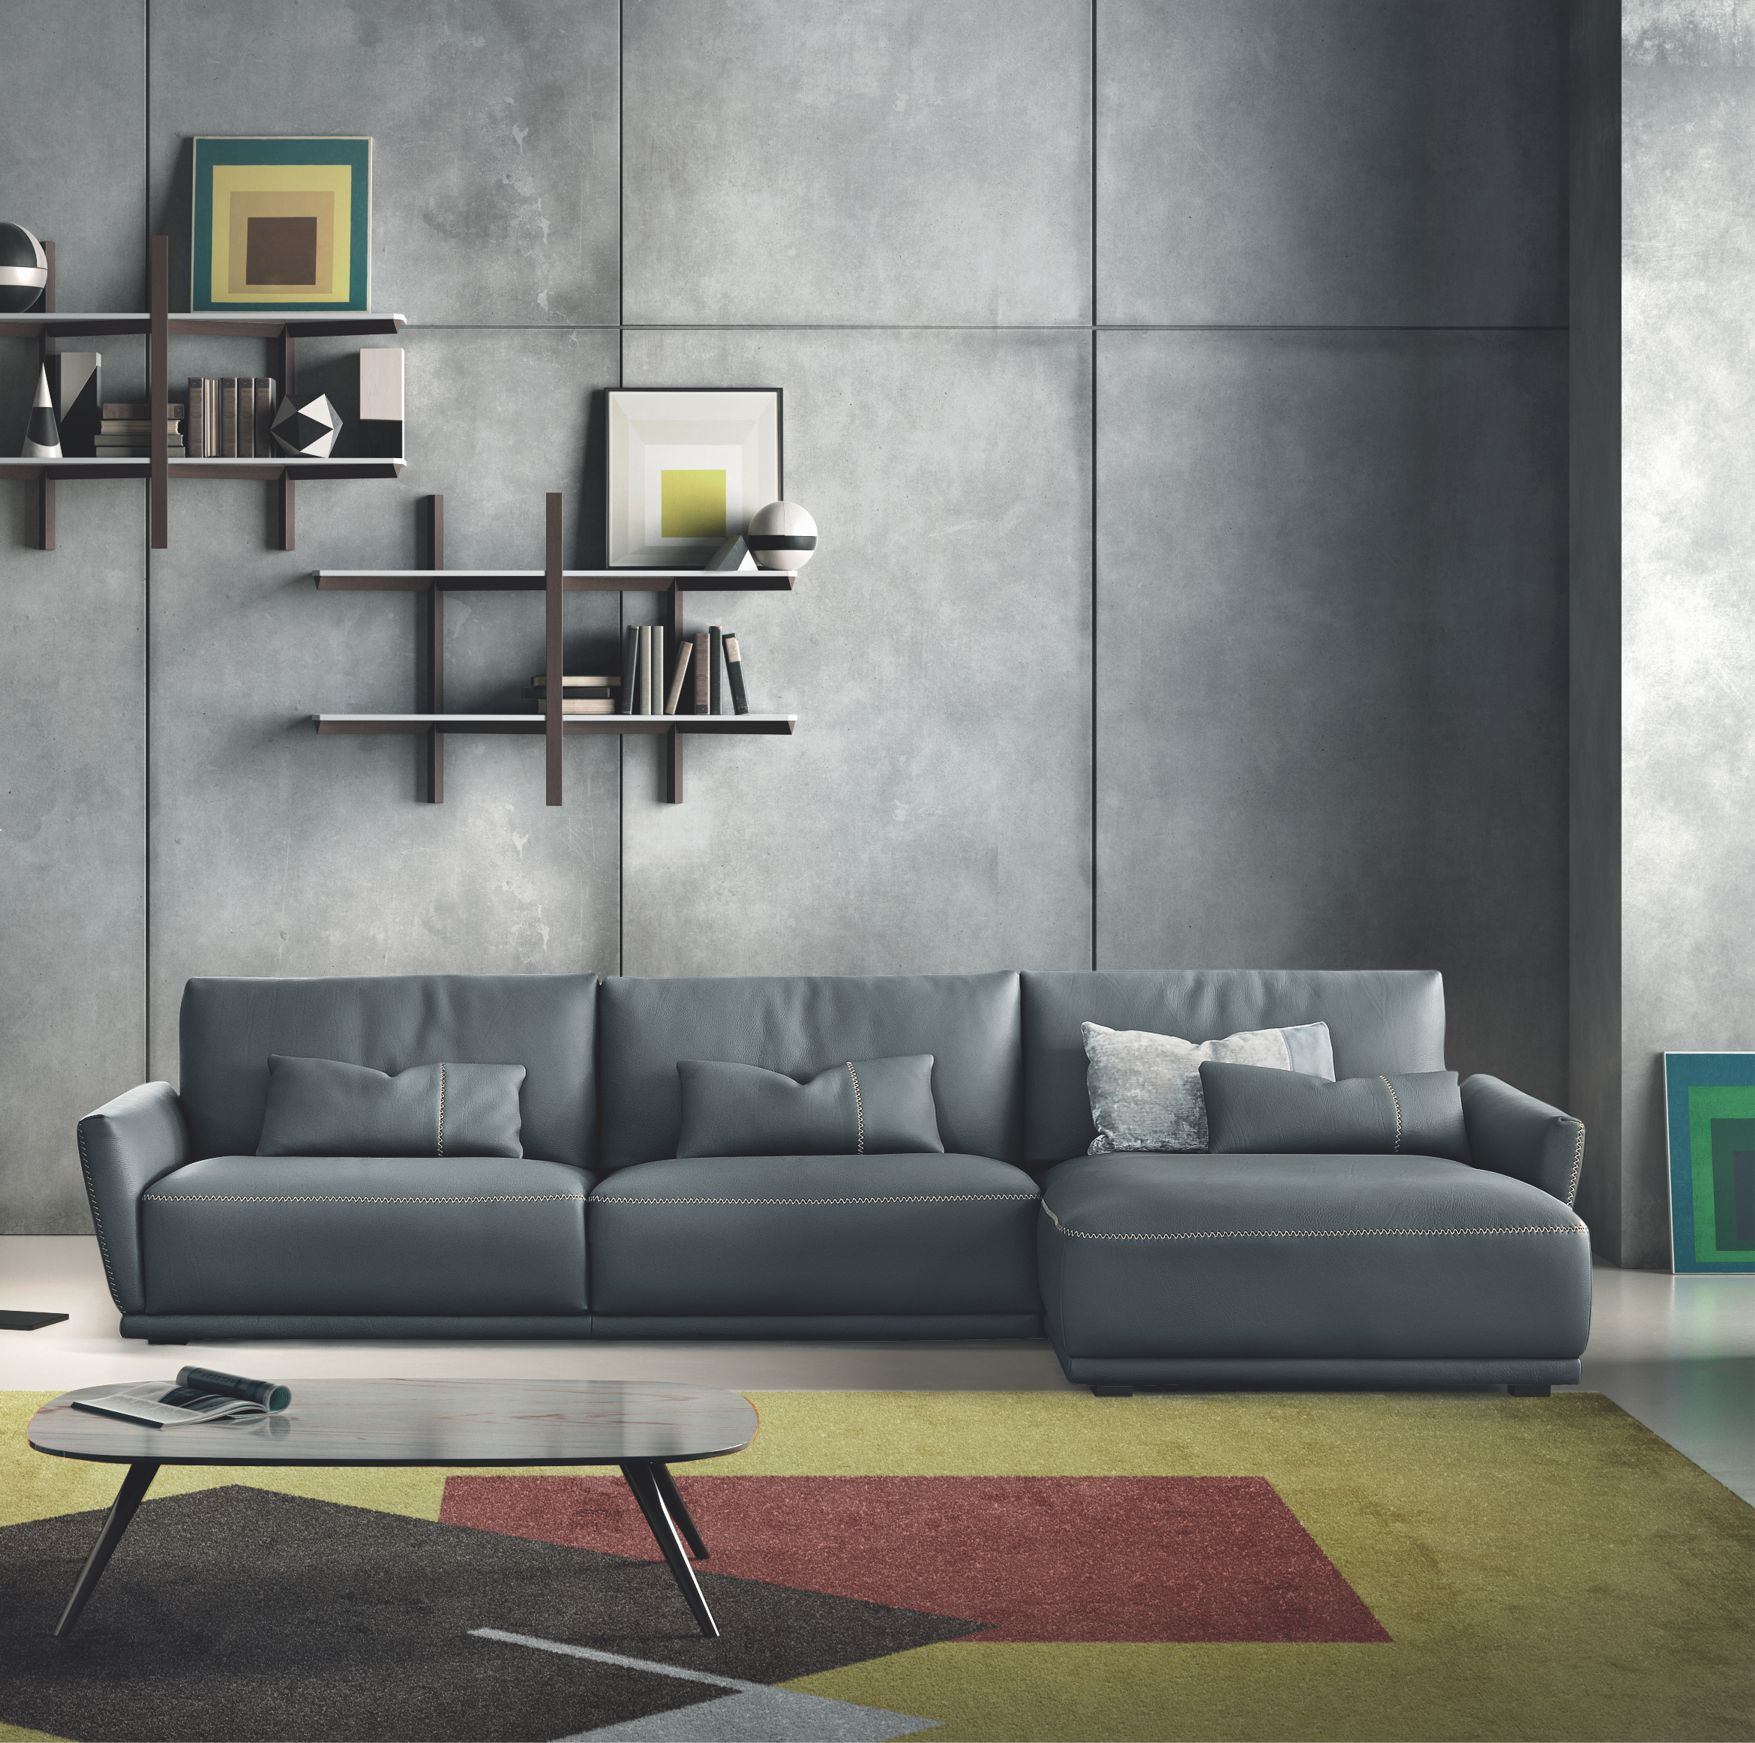 Victor modern sofa sectional by Gamma Arredamenti, Italy